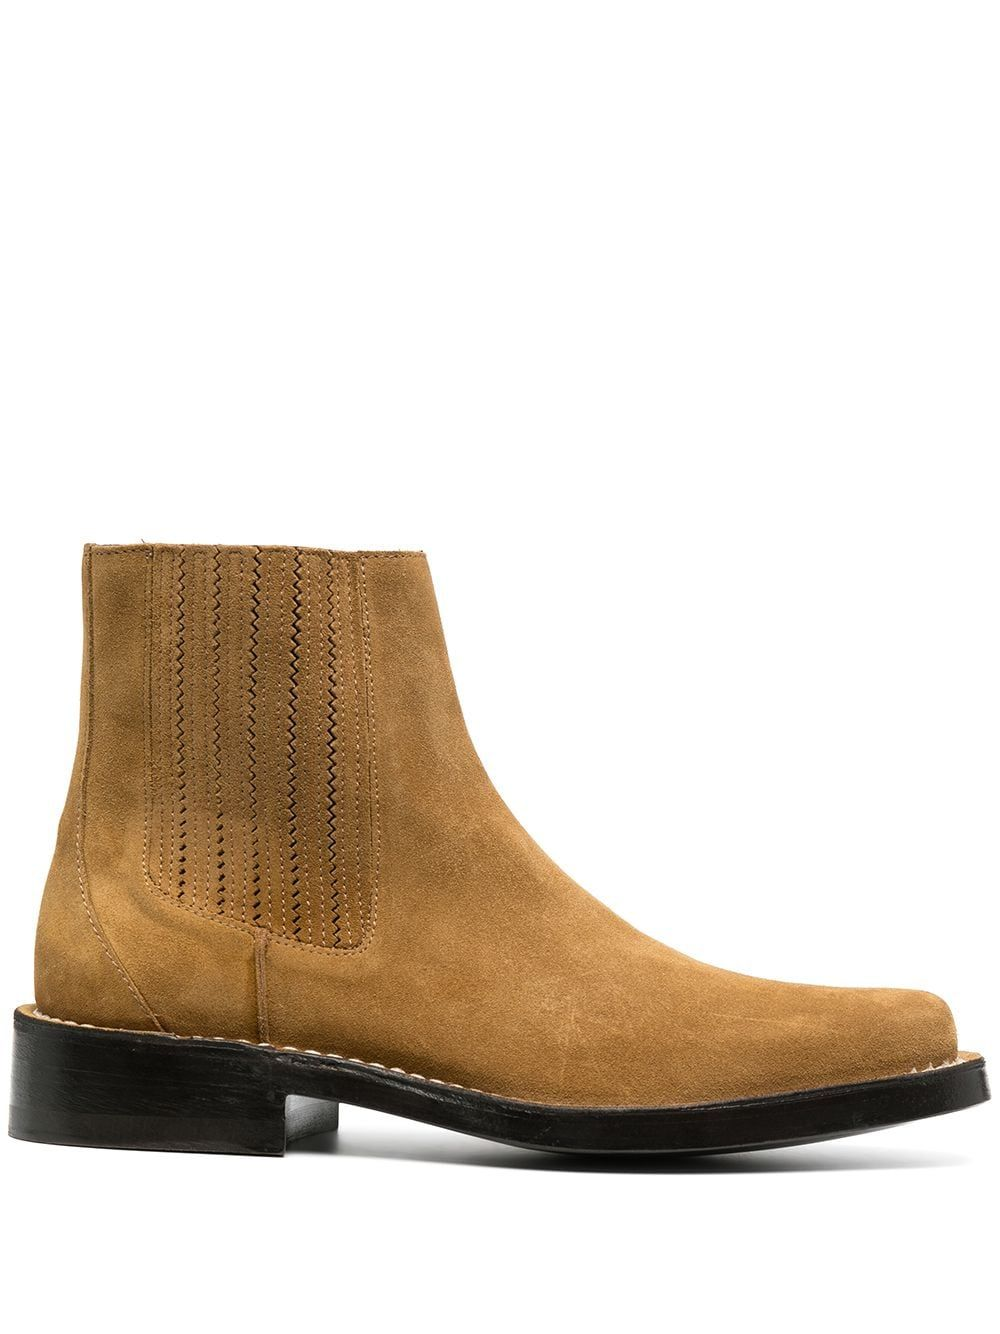 KENZO KENZO MEN'S BROWN LEATHER ANKLE BOOTS